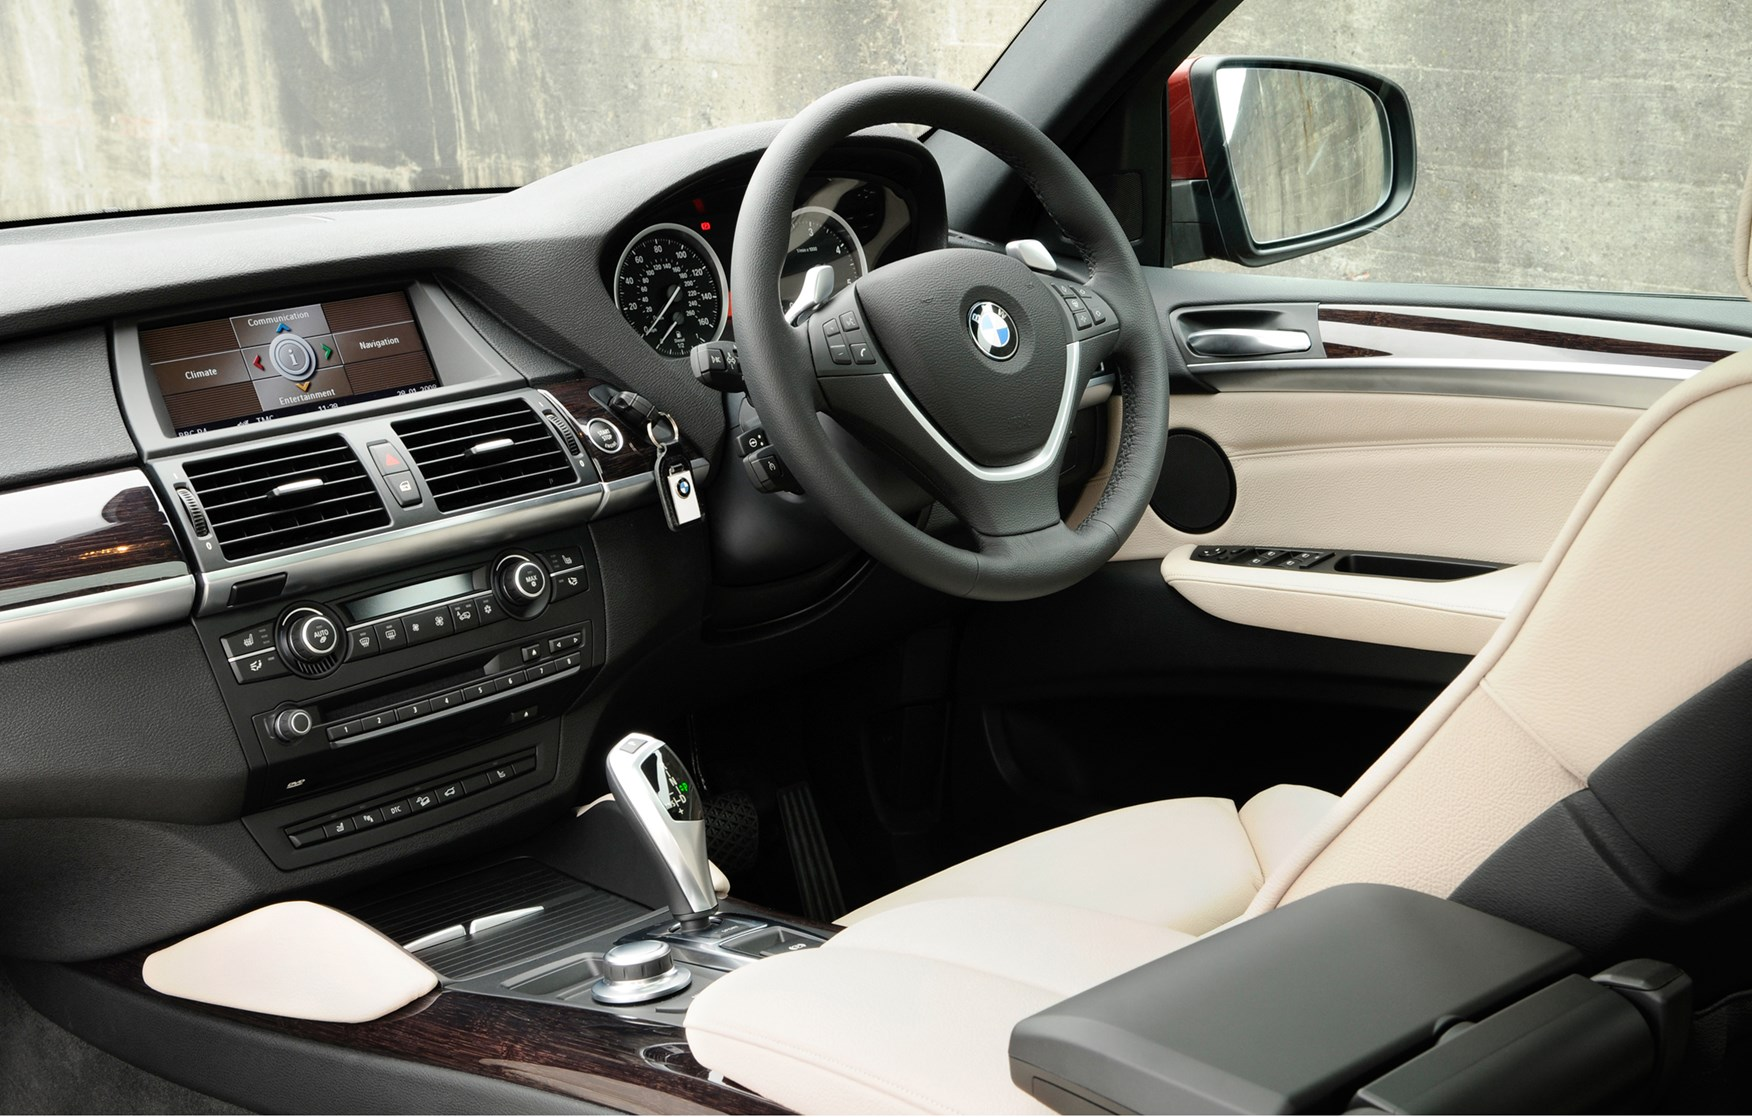 Bmw X6 Estate 2008 2014 Features Equipment And Accessories